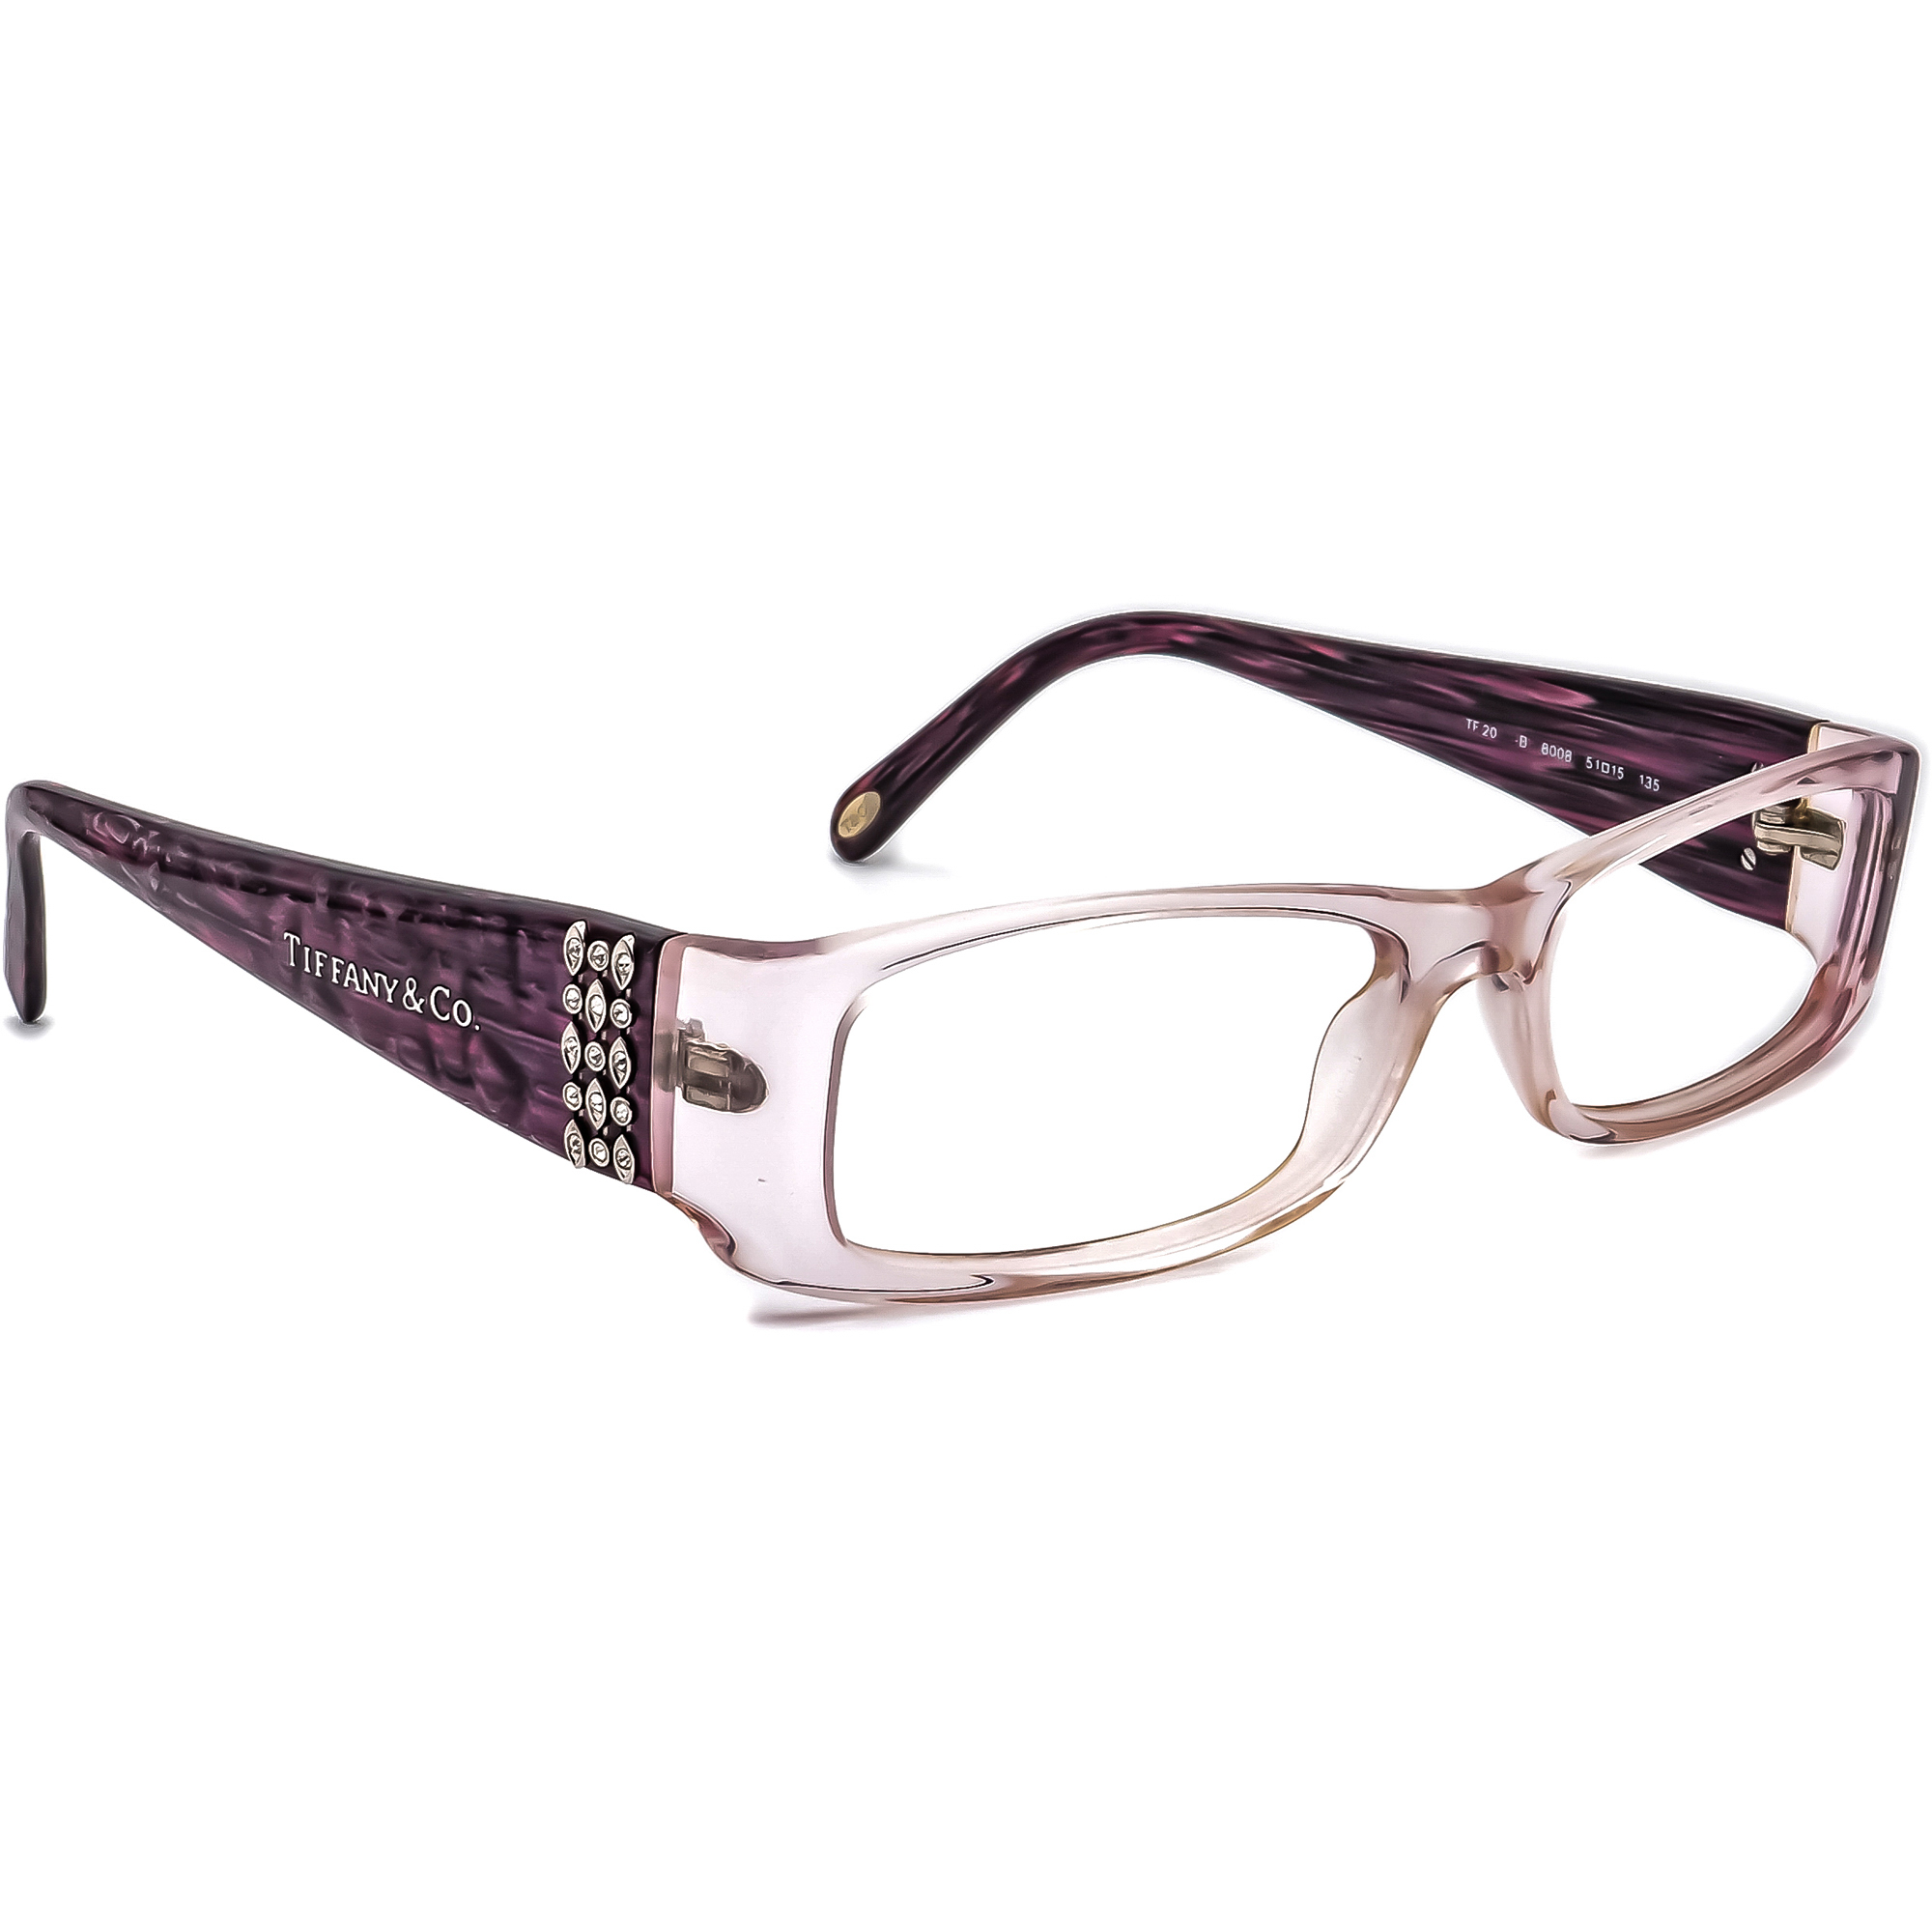 Tiffany & Co. TF 2002-B 8008 Eyeglasses